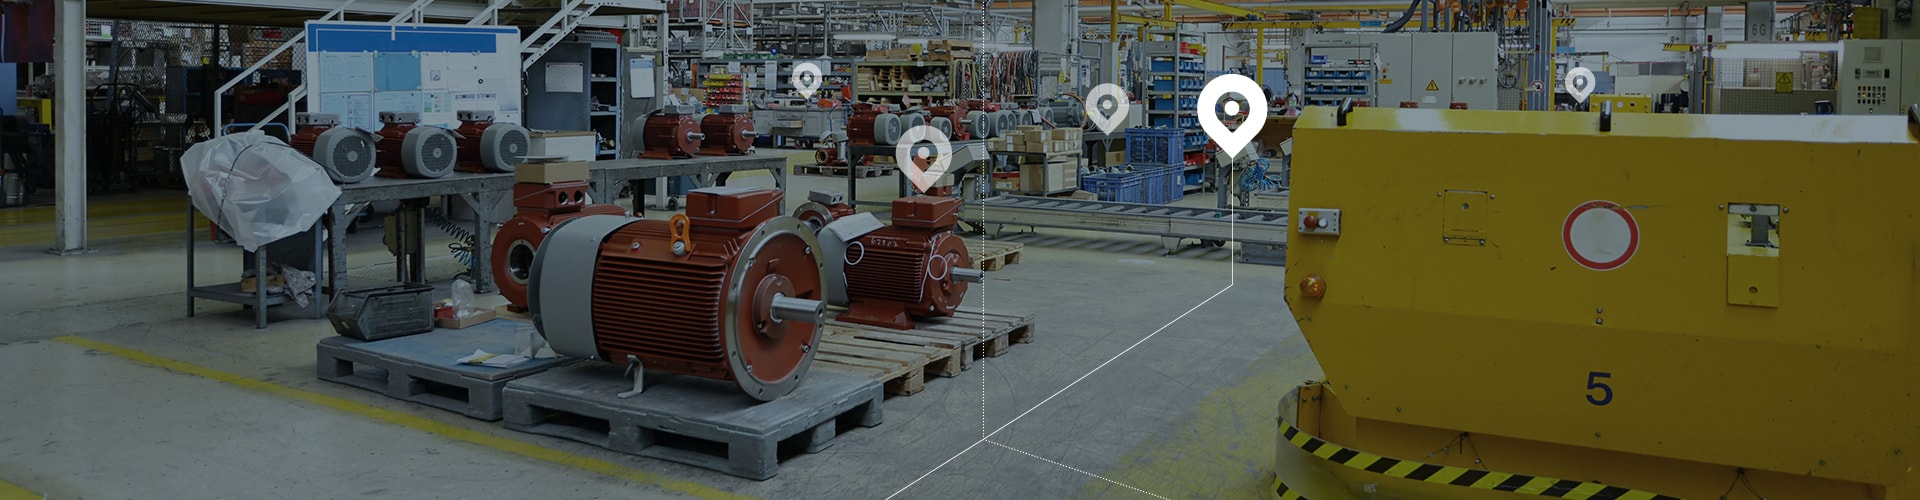 Favendo_RTLS_example_asset_tracking_manufacturing_c